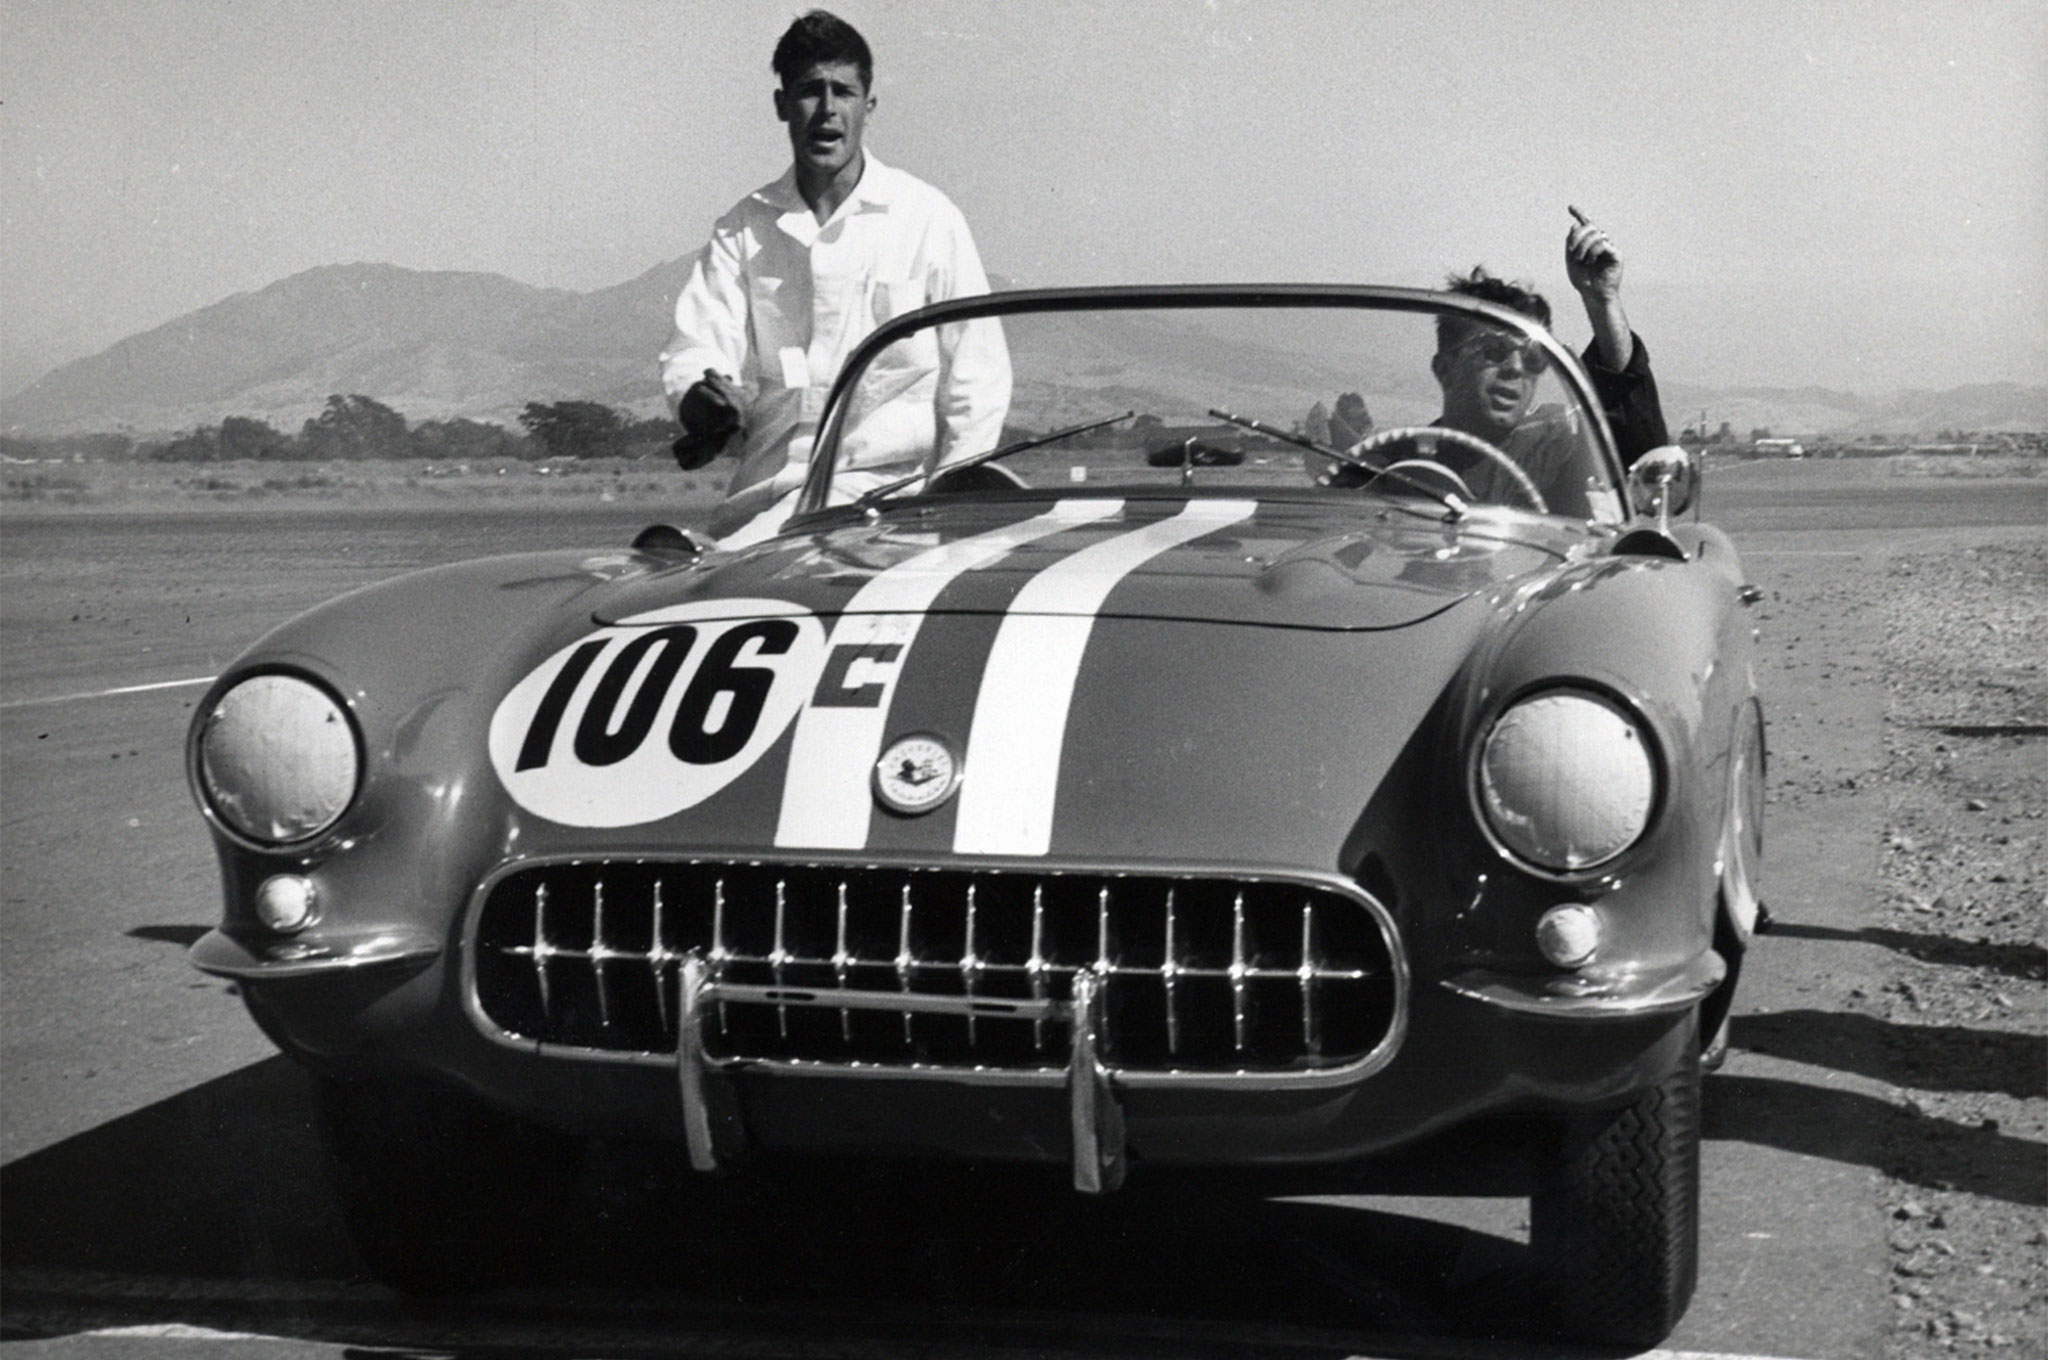 """A few weeks after boldly boasting to Chevrolet executives in Pebble Beach that a couple of magazine guys could road race a Corvette better than the Midwestern-based factory team performed in its first SCCA event, GM delivered a special one to HRM staffers Racer Brown (seated) and Bob D'Olivo. After a disappointing initial outing on original tires, Bob Pollack won regularly in California Sports Car Club competition, while Dick Thompson earned enough combined SCCA points driving both the Eastern and Western cars to bring Corvette its first national championship—at the expense of Mercedes, whose exotic 300 SL coupes were supposed to dominate C-Production. Among other modifications made in D'Olivo's home garage over the course of this historic season, the heavy windshield was replaced with a tiny windscreen supplied by Chevrolet Engineering. (Tech Editor Brown details the others in the Oct. '56 HRM: """"Rod Testing a 'STOCK' Corvette."""")"""